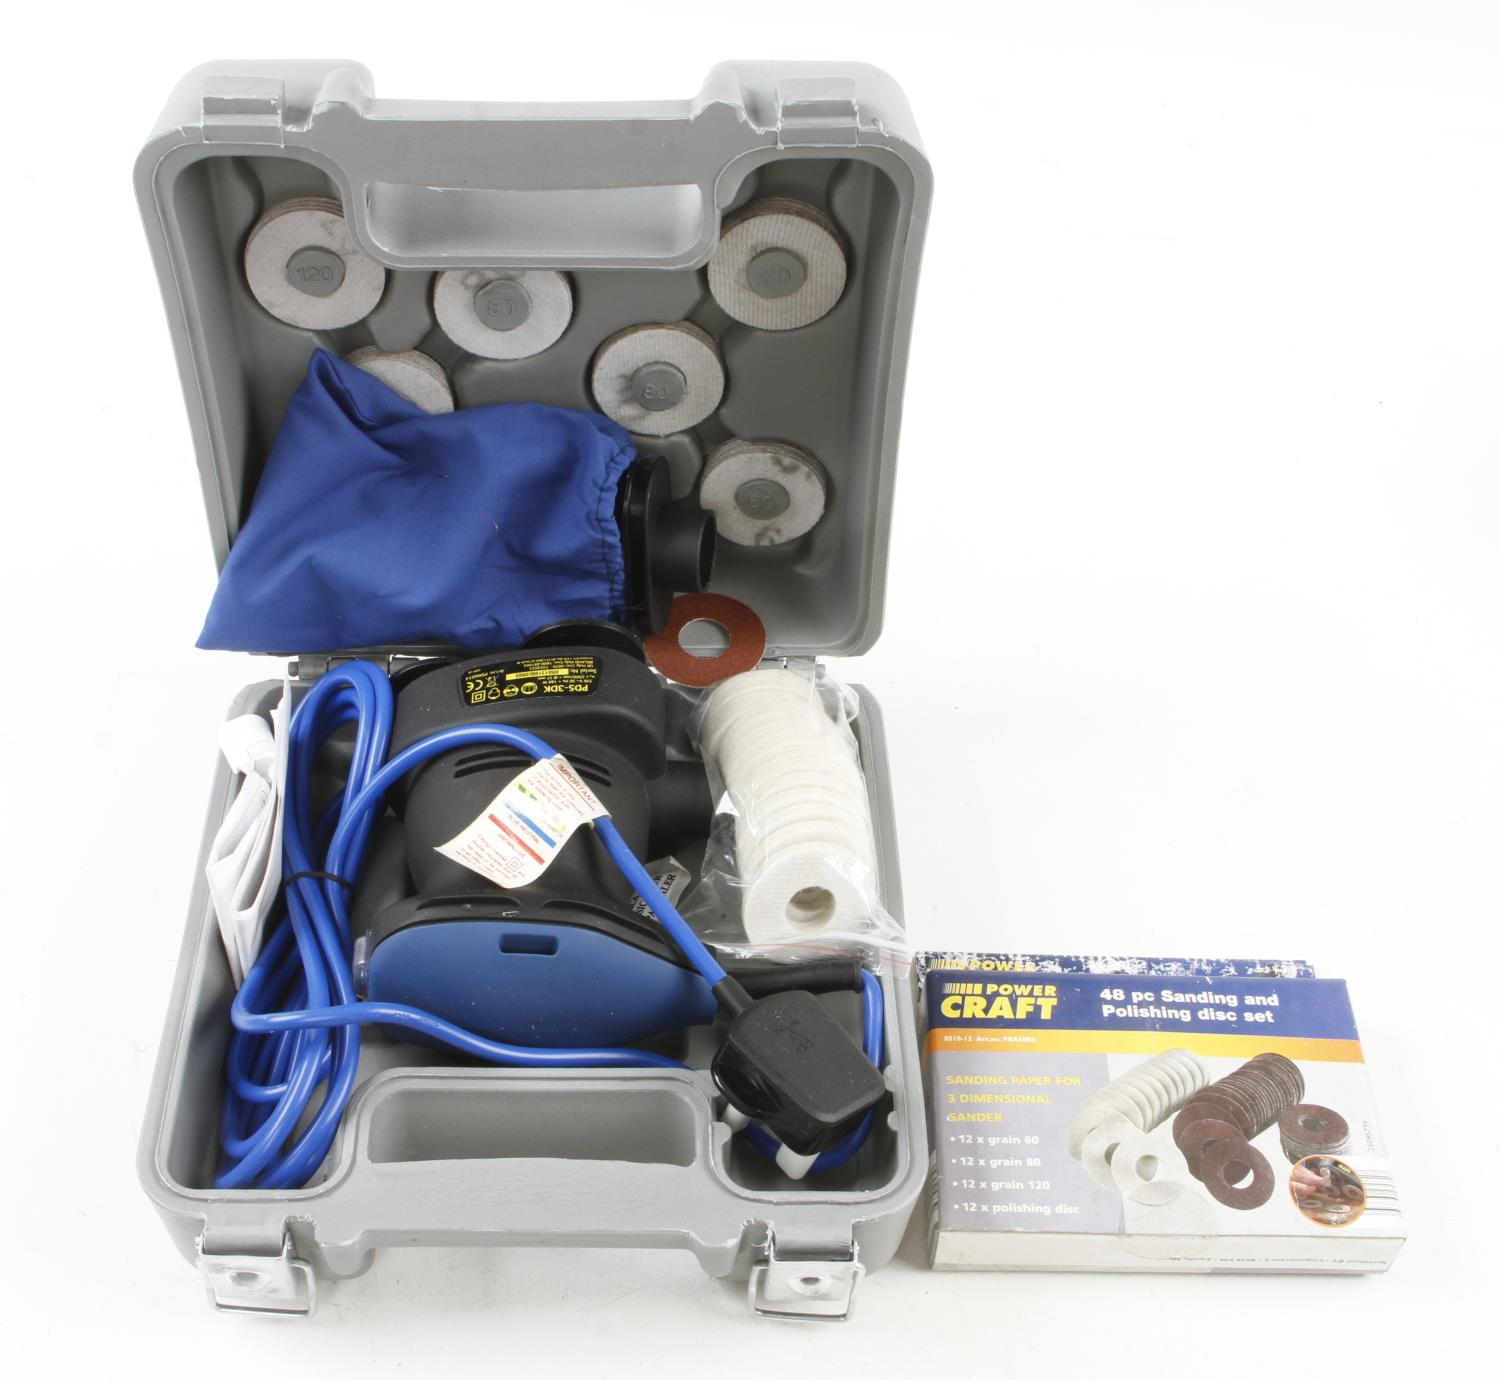 An unused POWERCARFT 3D sander in orig box Pat tested F - Image 2 of 2